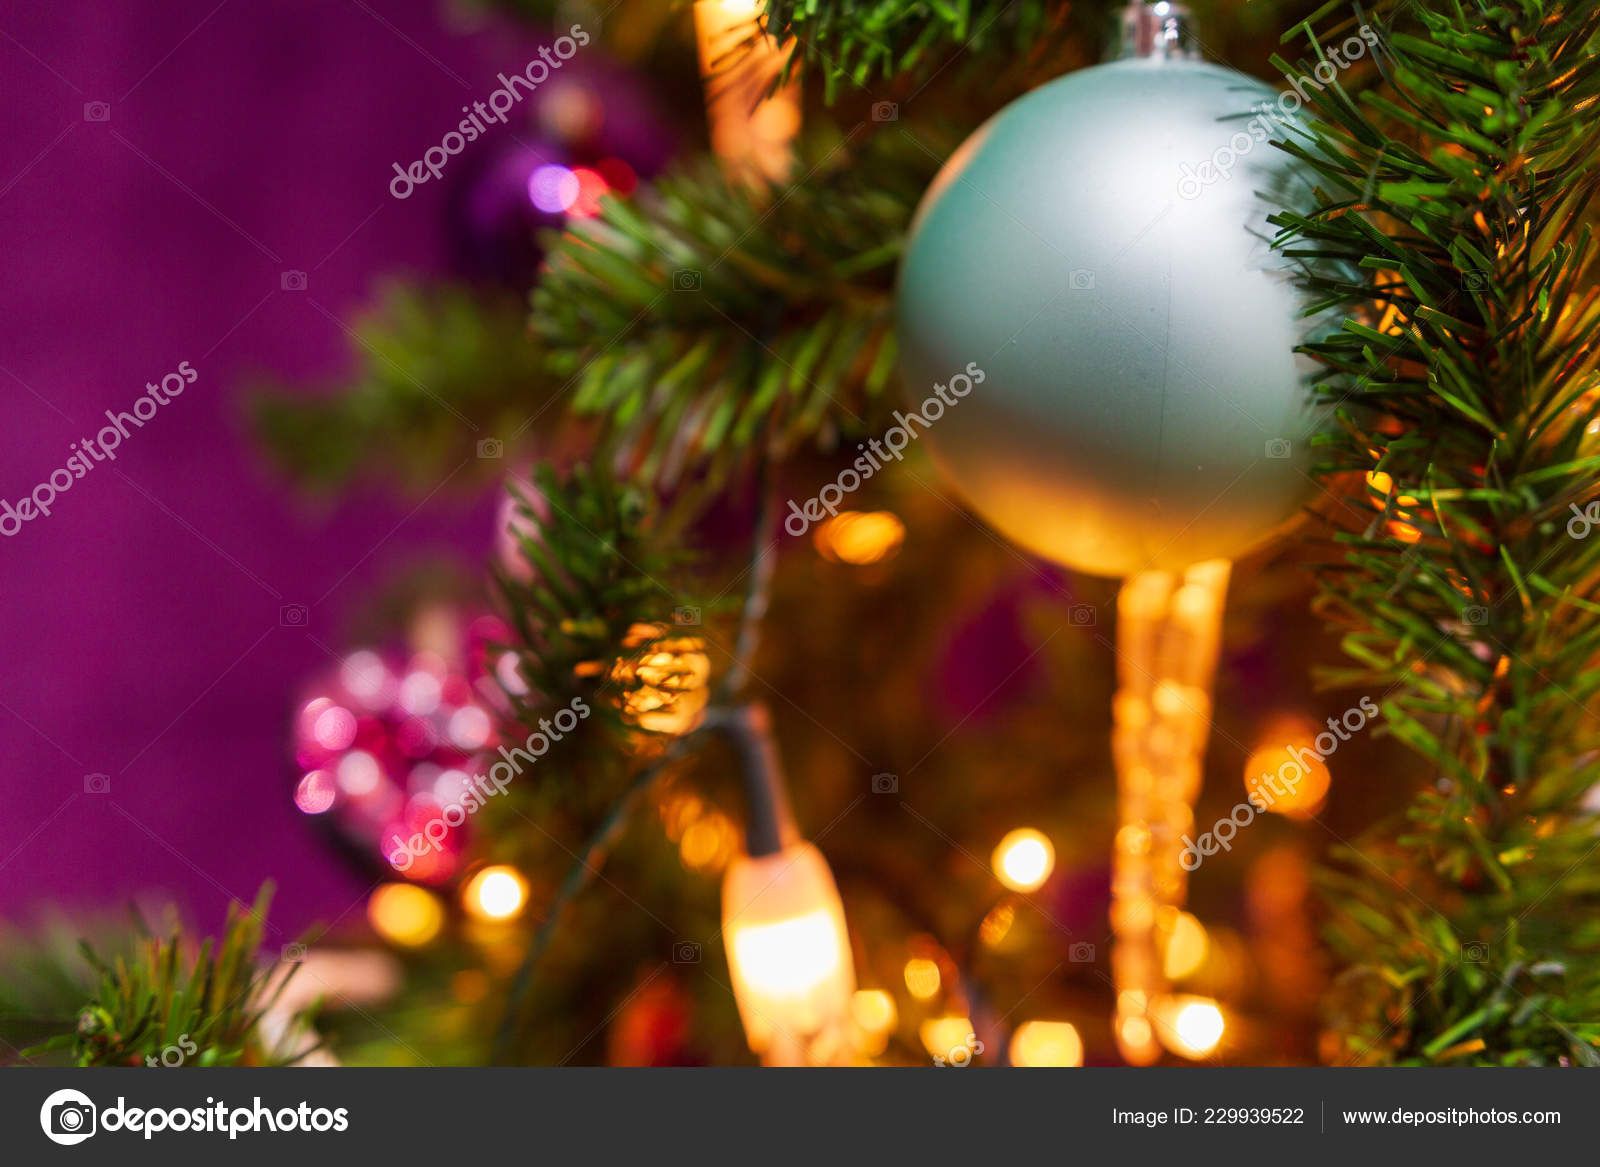 Christmas Tree Decorated Purple Theme Prominent Cyan Ball Foreground Other Stock Photo C Palliki 229939522